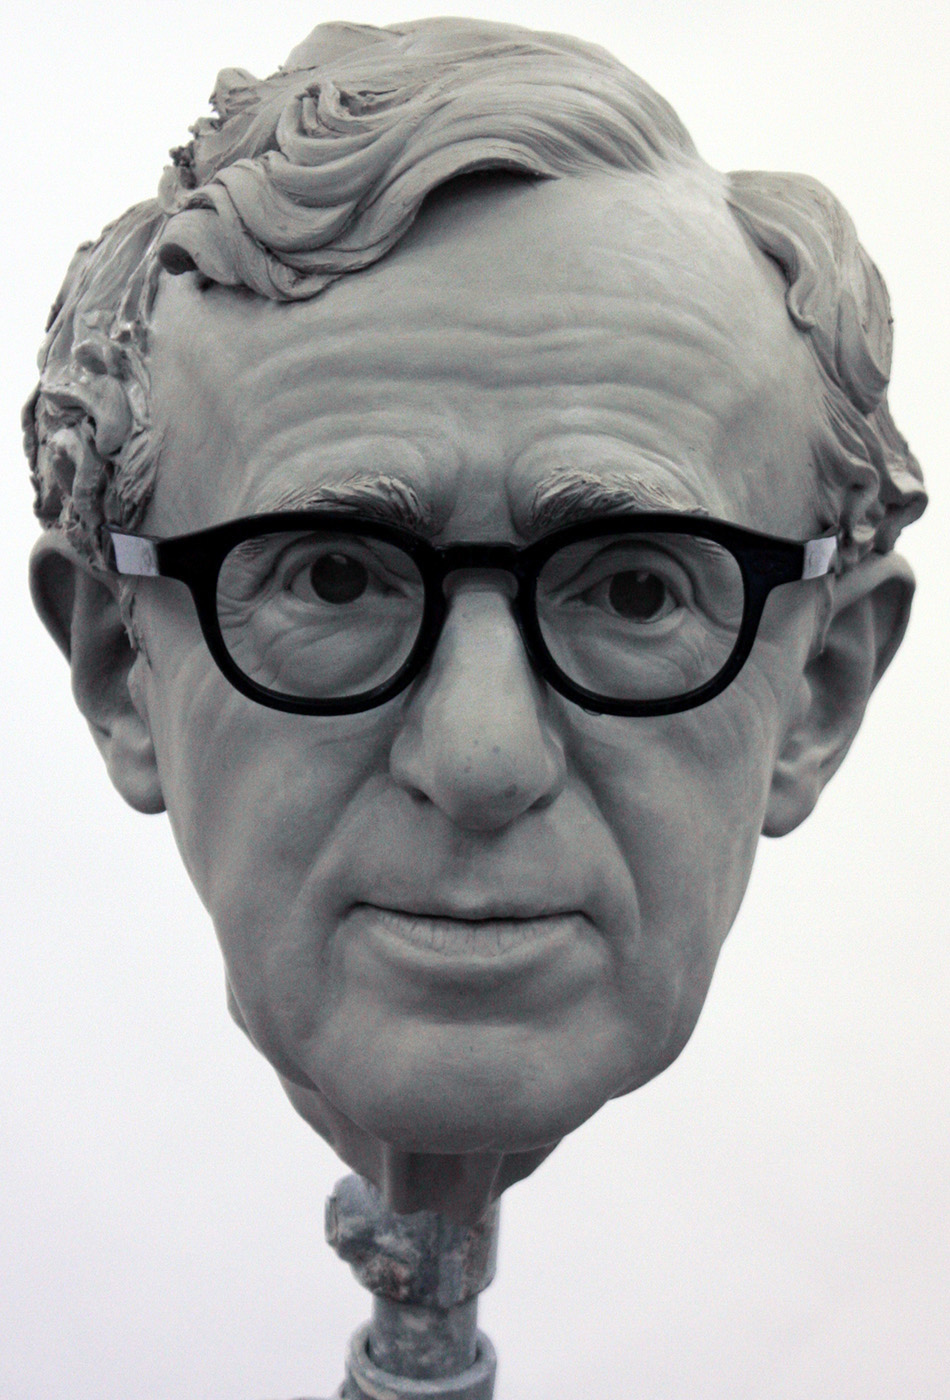 Portrait sculptor Woody Allen